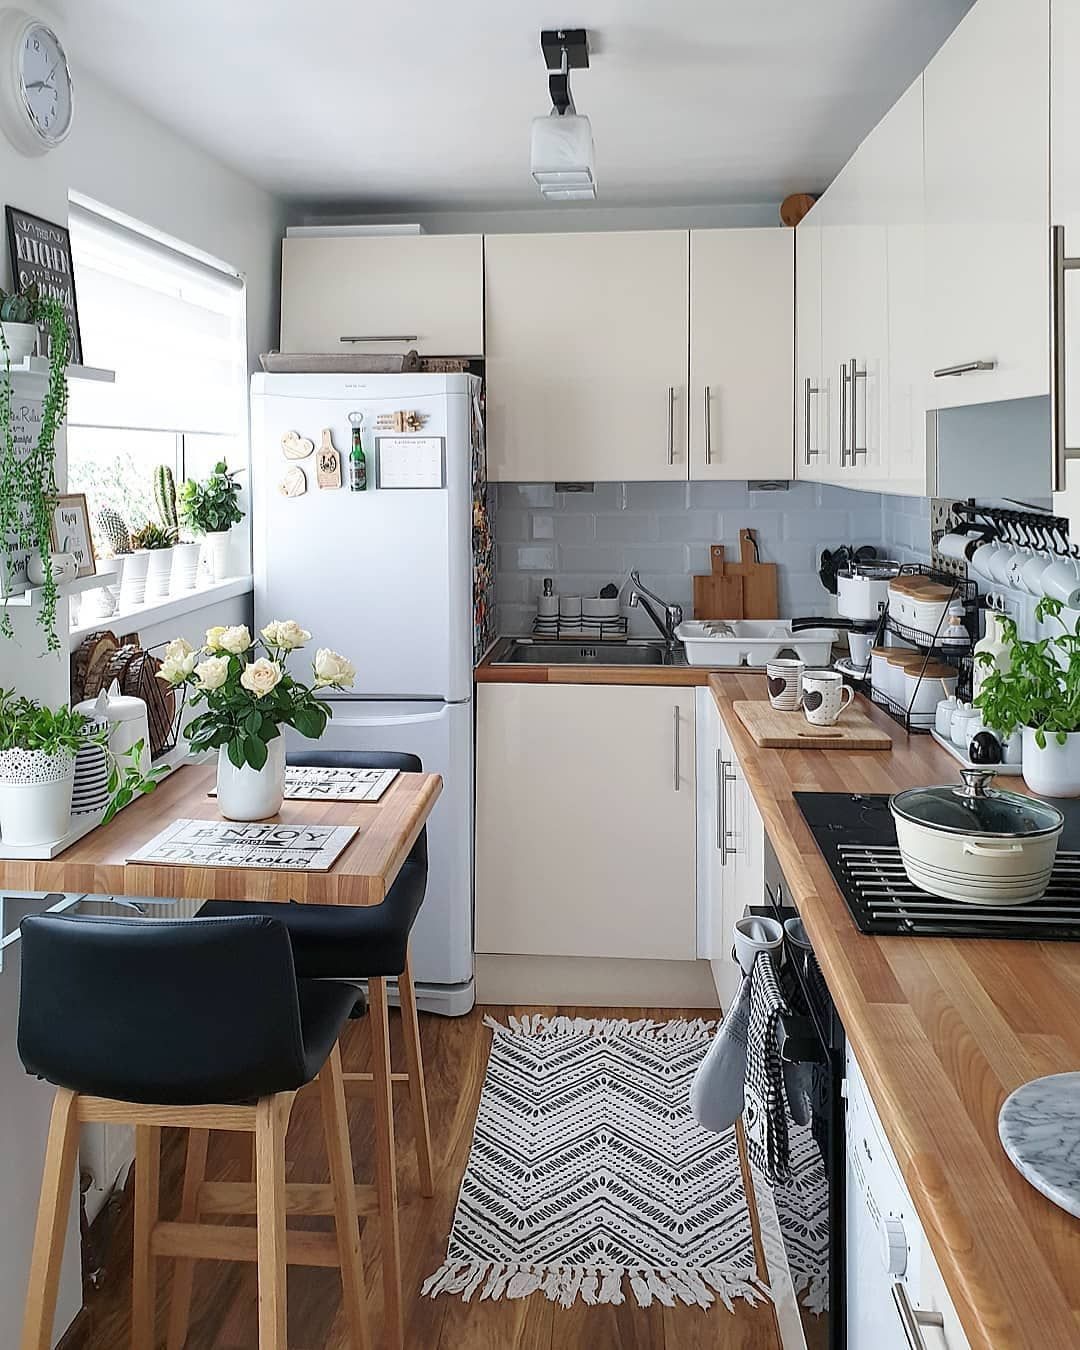 20 Small Kitchen Ideas Ideas To Open Your Compact Room 2019 Page 11 Of 26 My B Cuisine De Petit Appartement Idee Amenagement Cuisine Cuisine Appartement